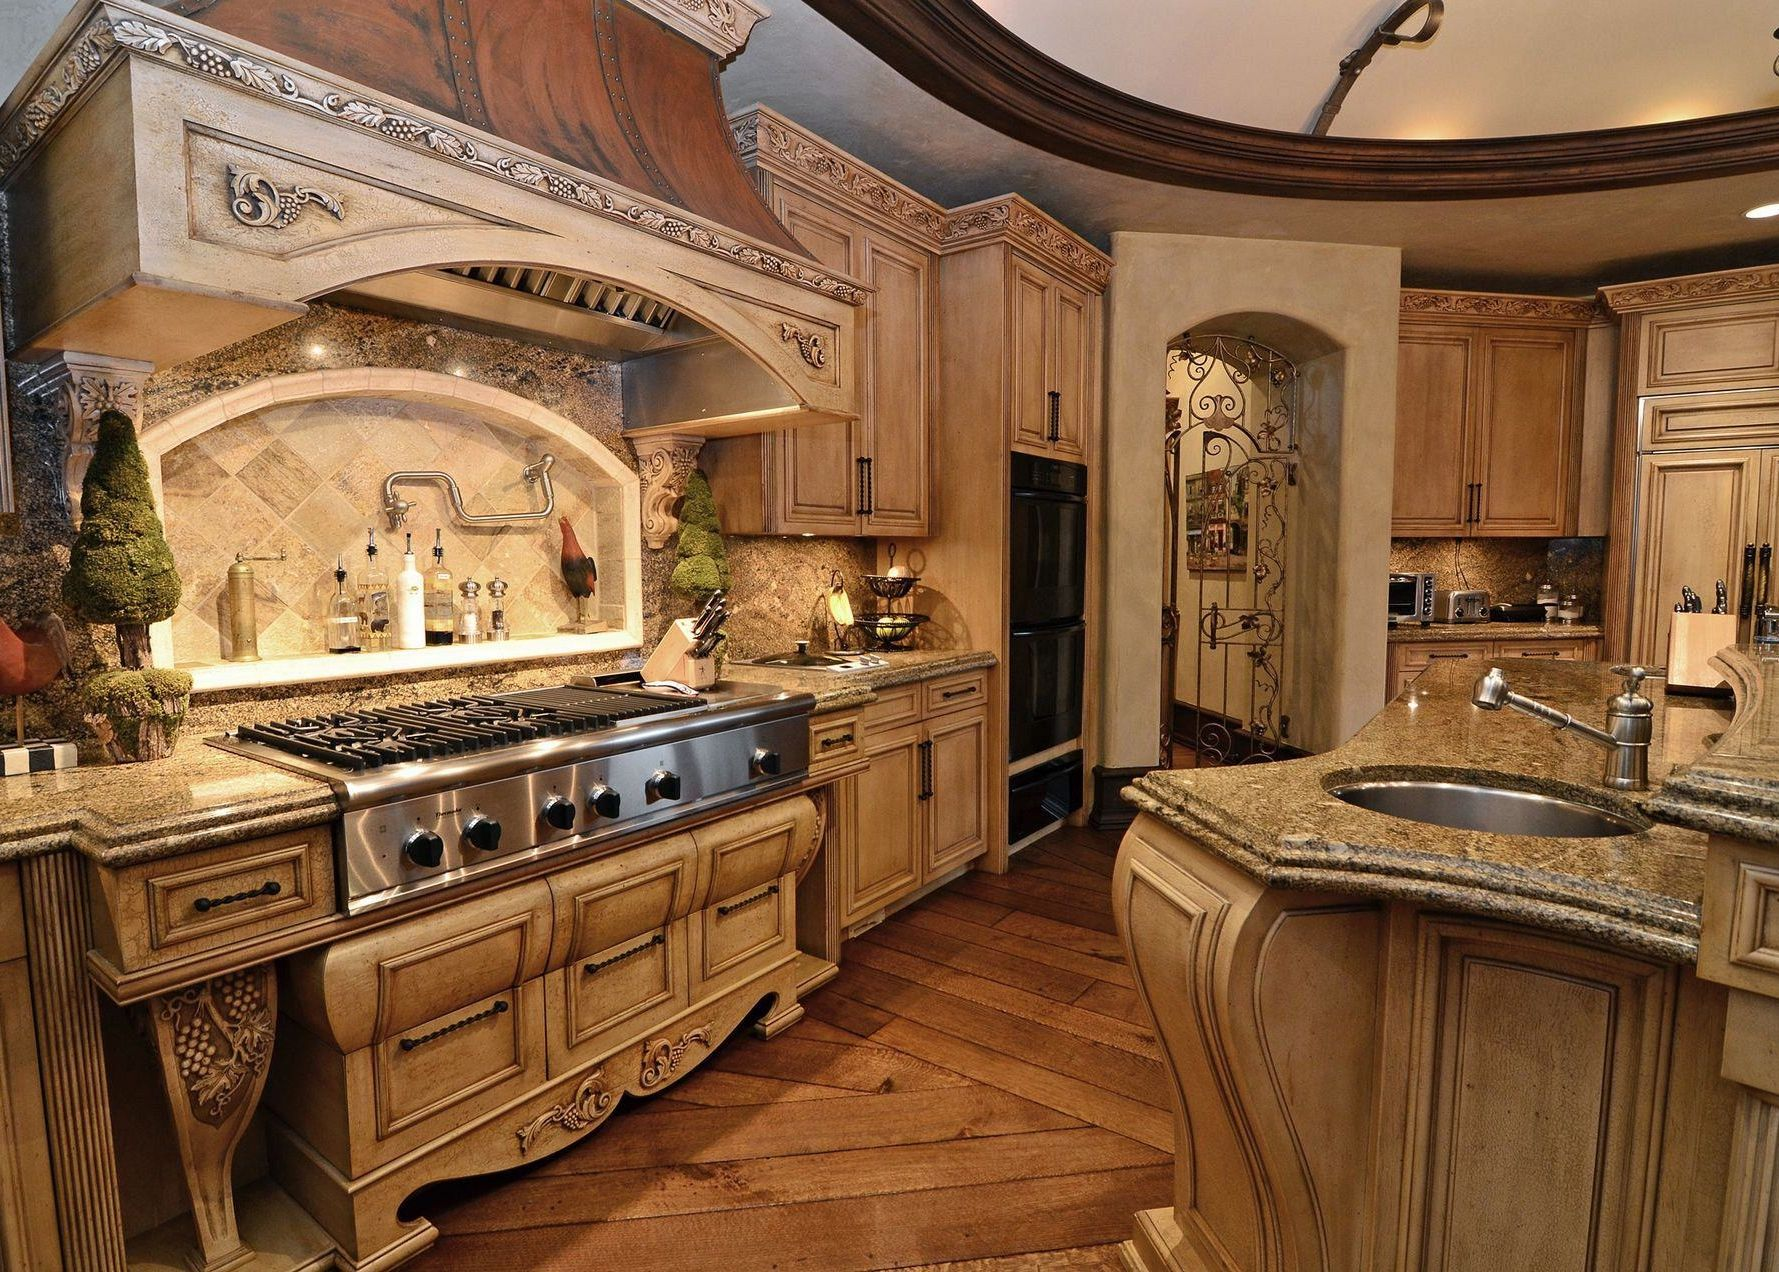 find this pin and more on kitchens old world kitchen cabinets - Old World Kitchen Cabinets